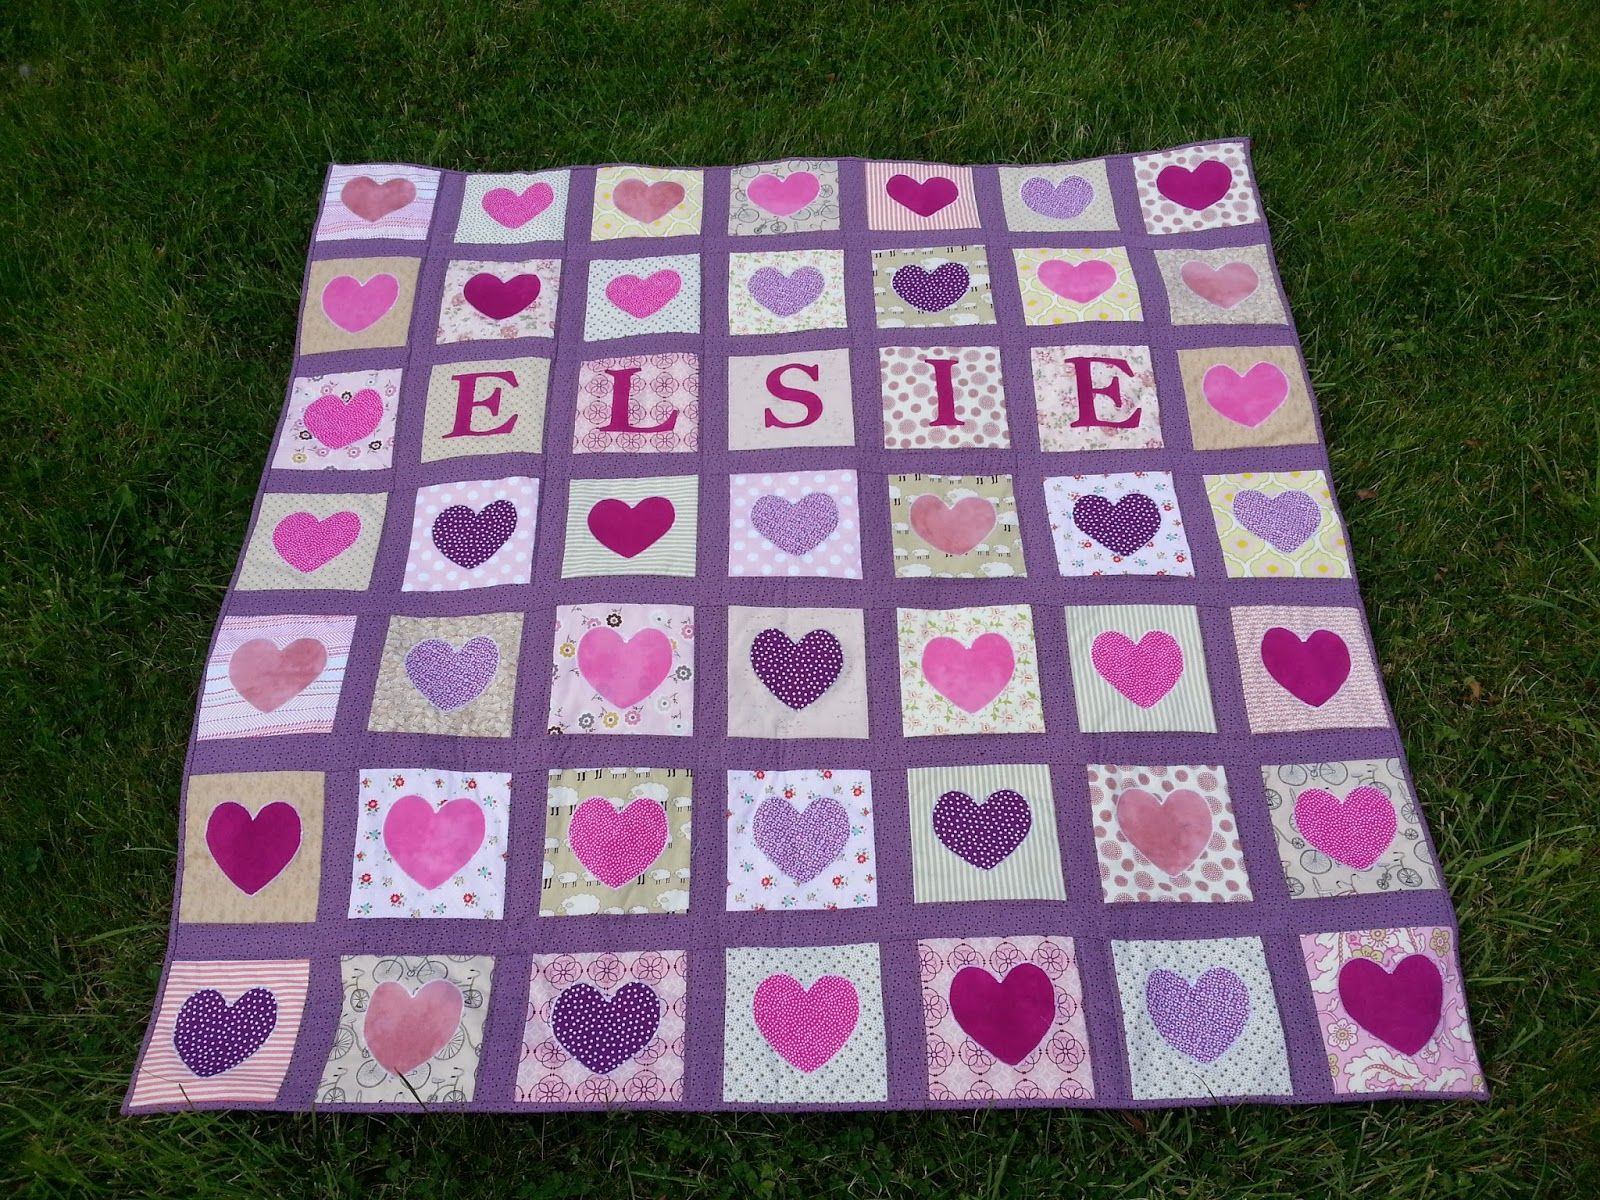 Personalised quilt die cut letters hearts from tuam quilt shop personalised quilt die cut letters hearts from tuam quilt shop galway appliqu spiritdancerdesigns Images